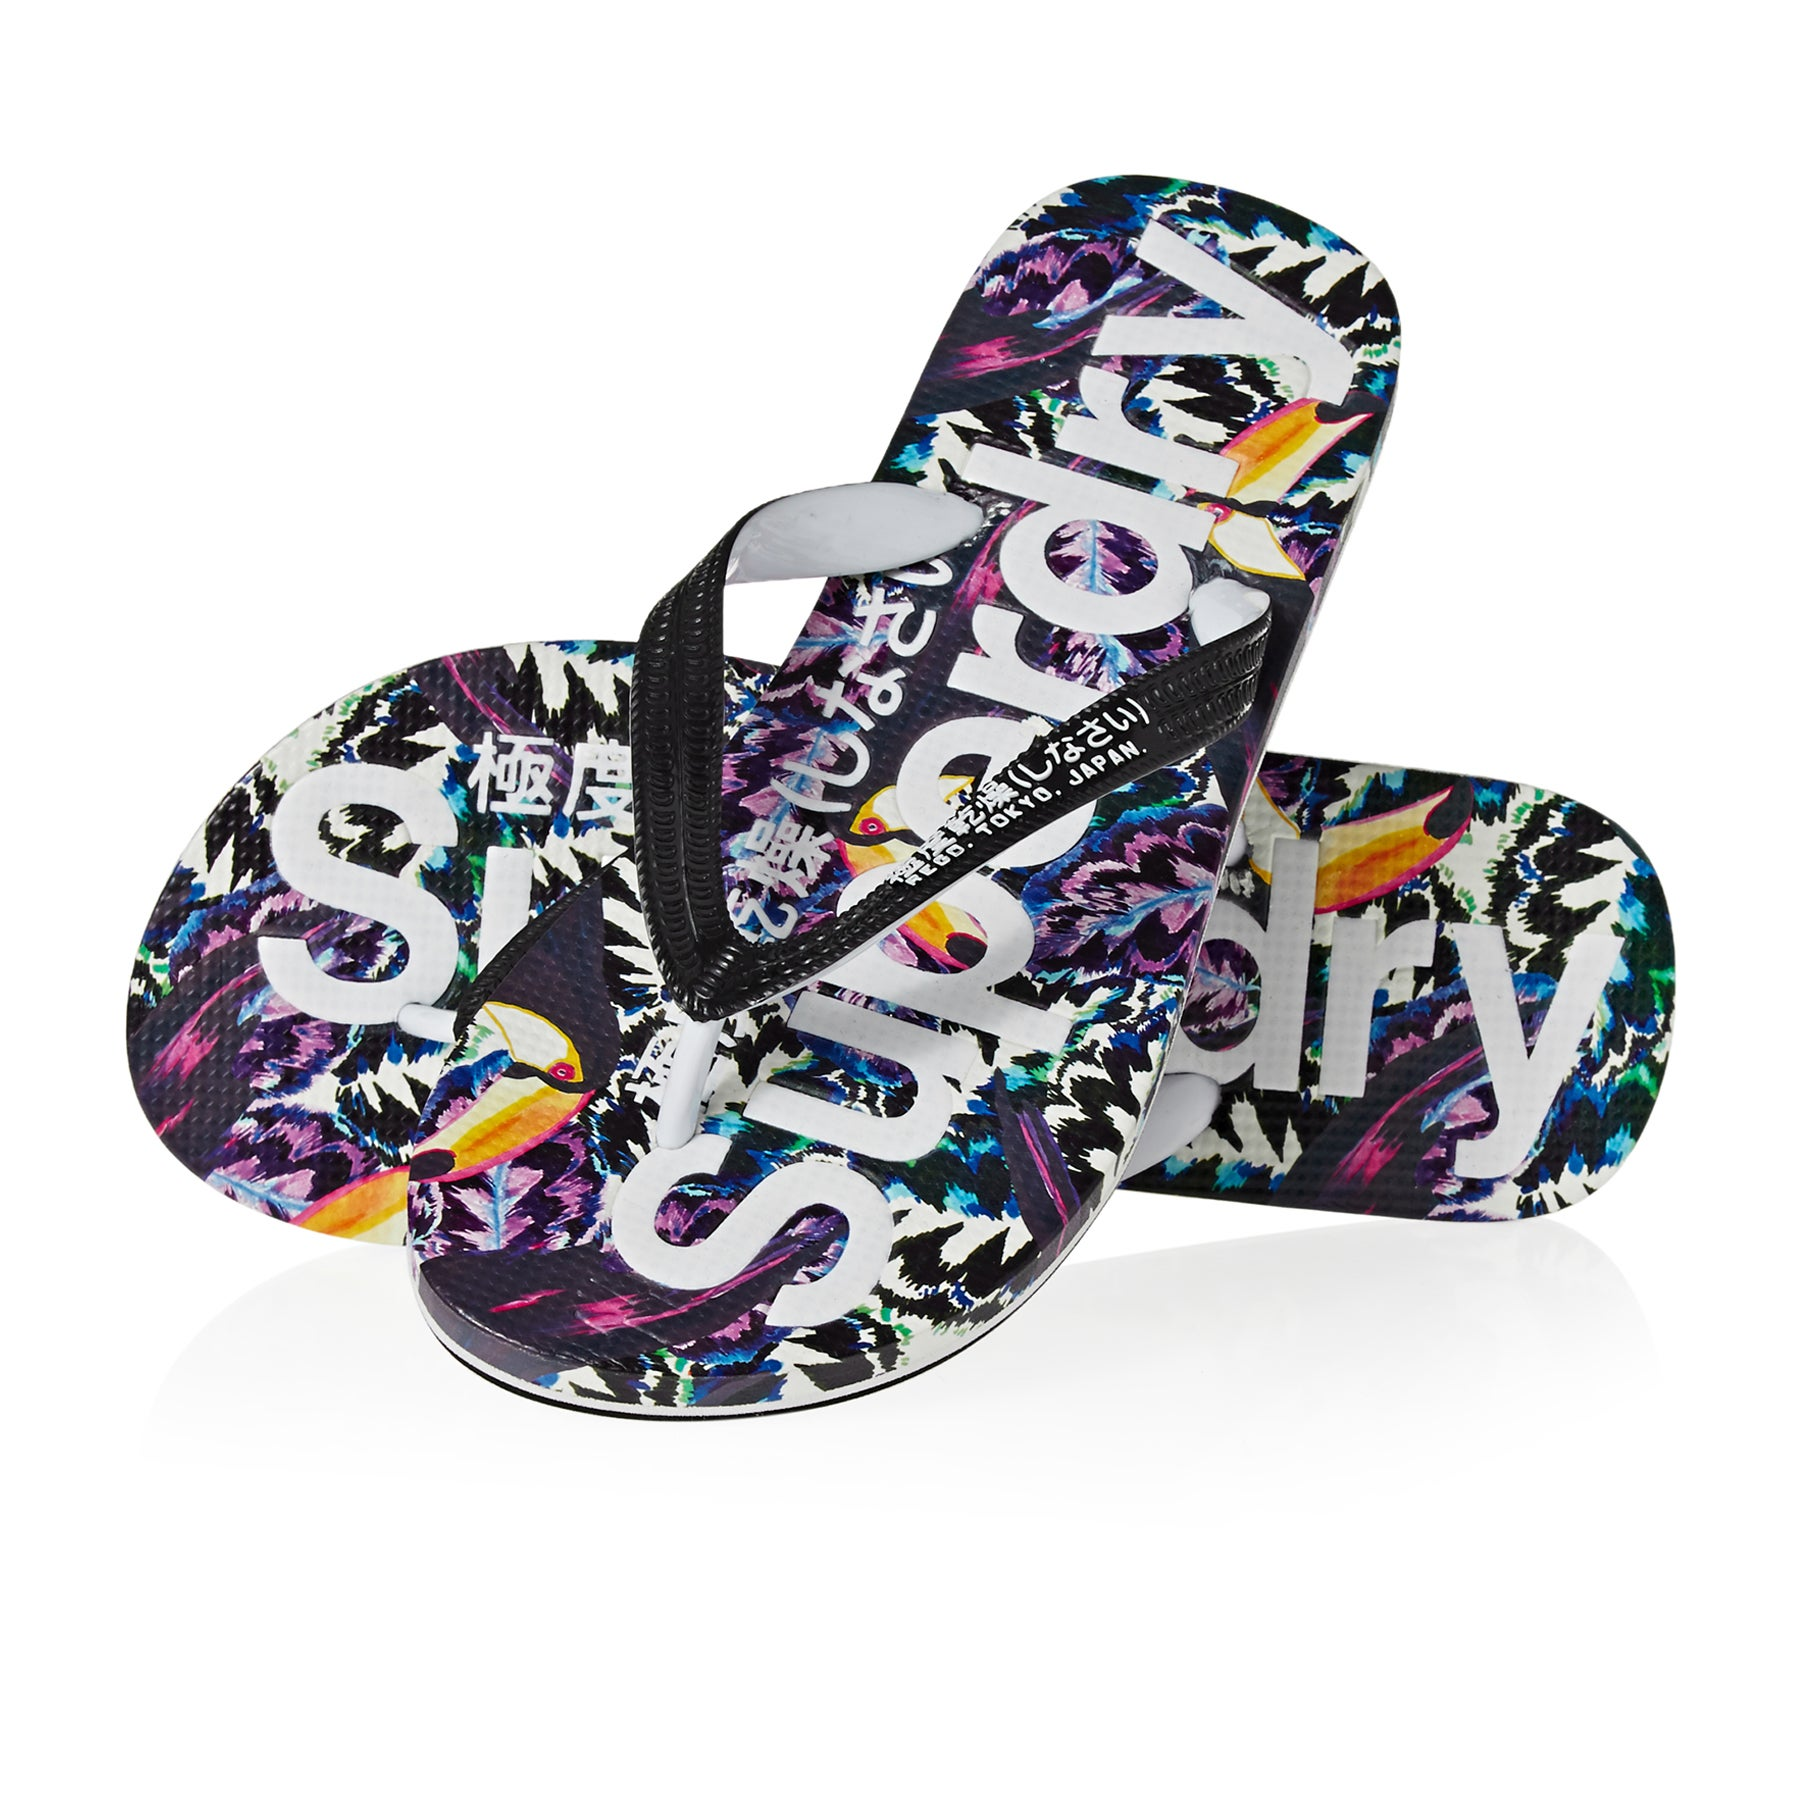 Sandales Femme Superdry All Over Print - Toucan Bazaar